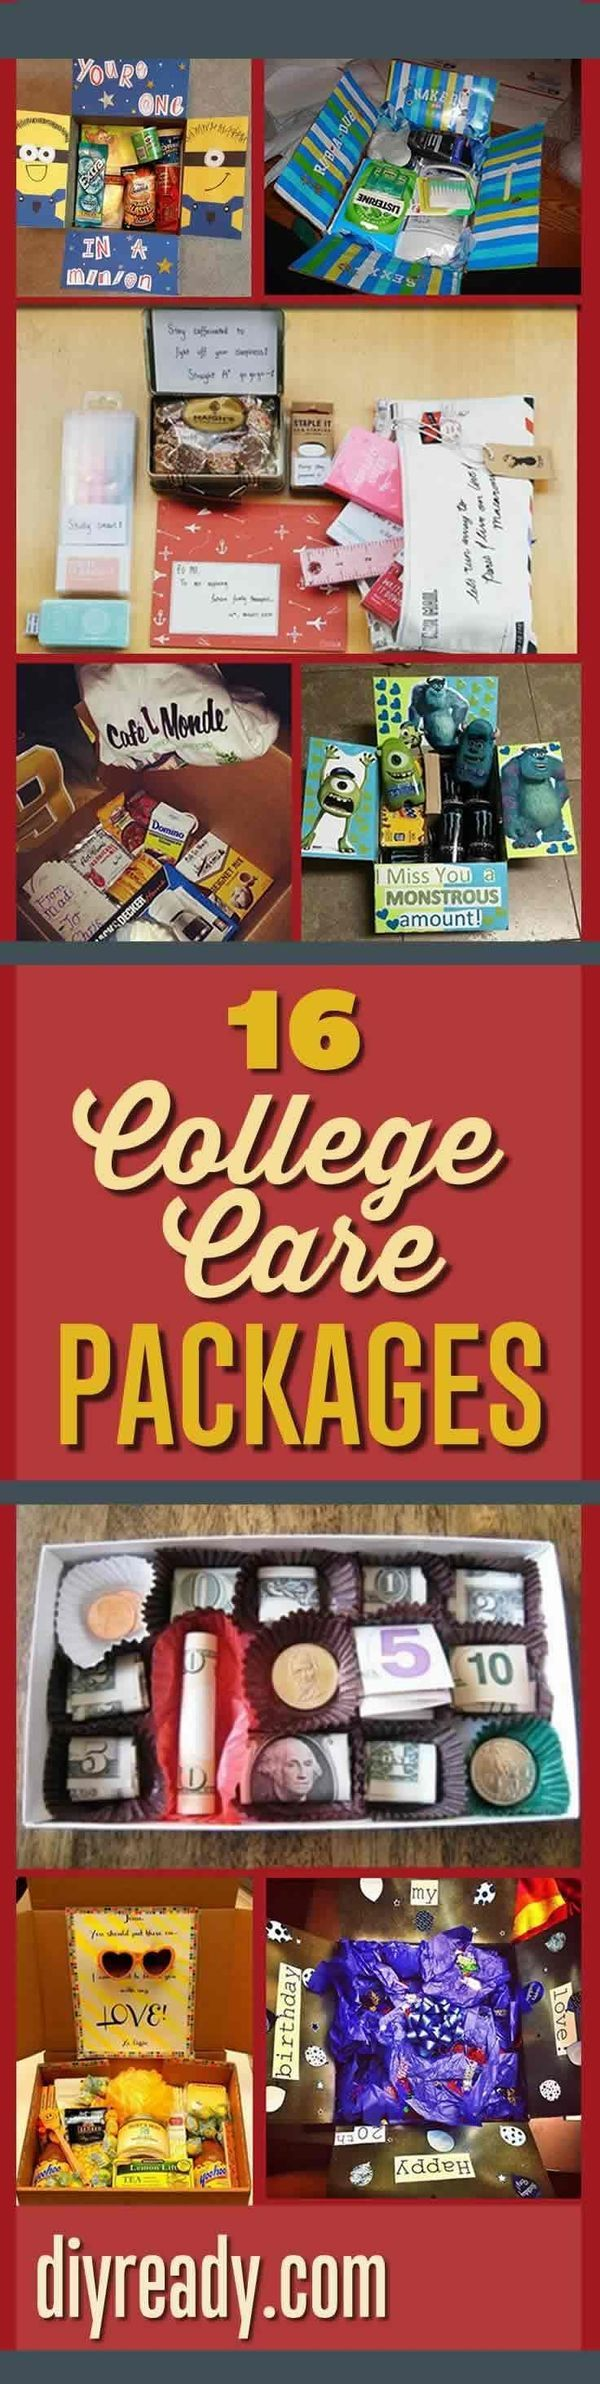 16 Cool College Care Package DIY Ideas   DIY Ready